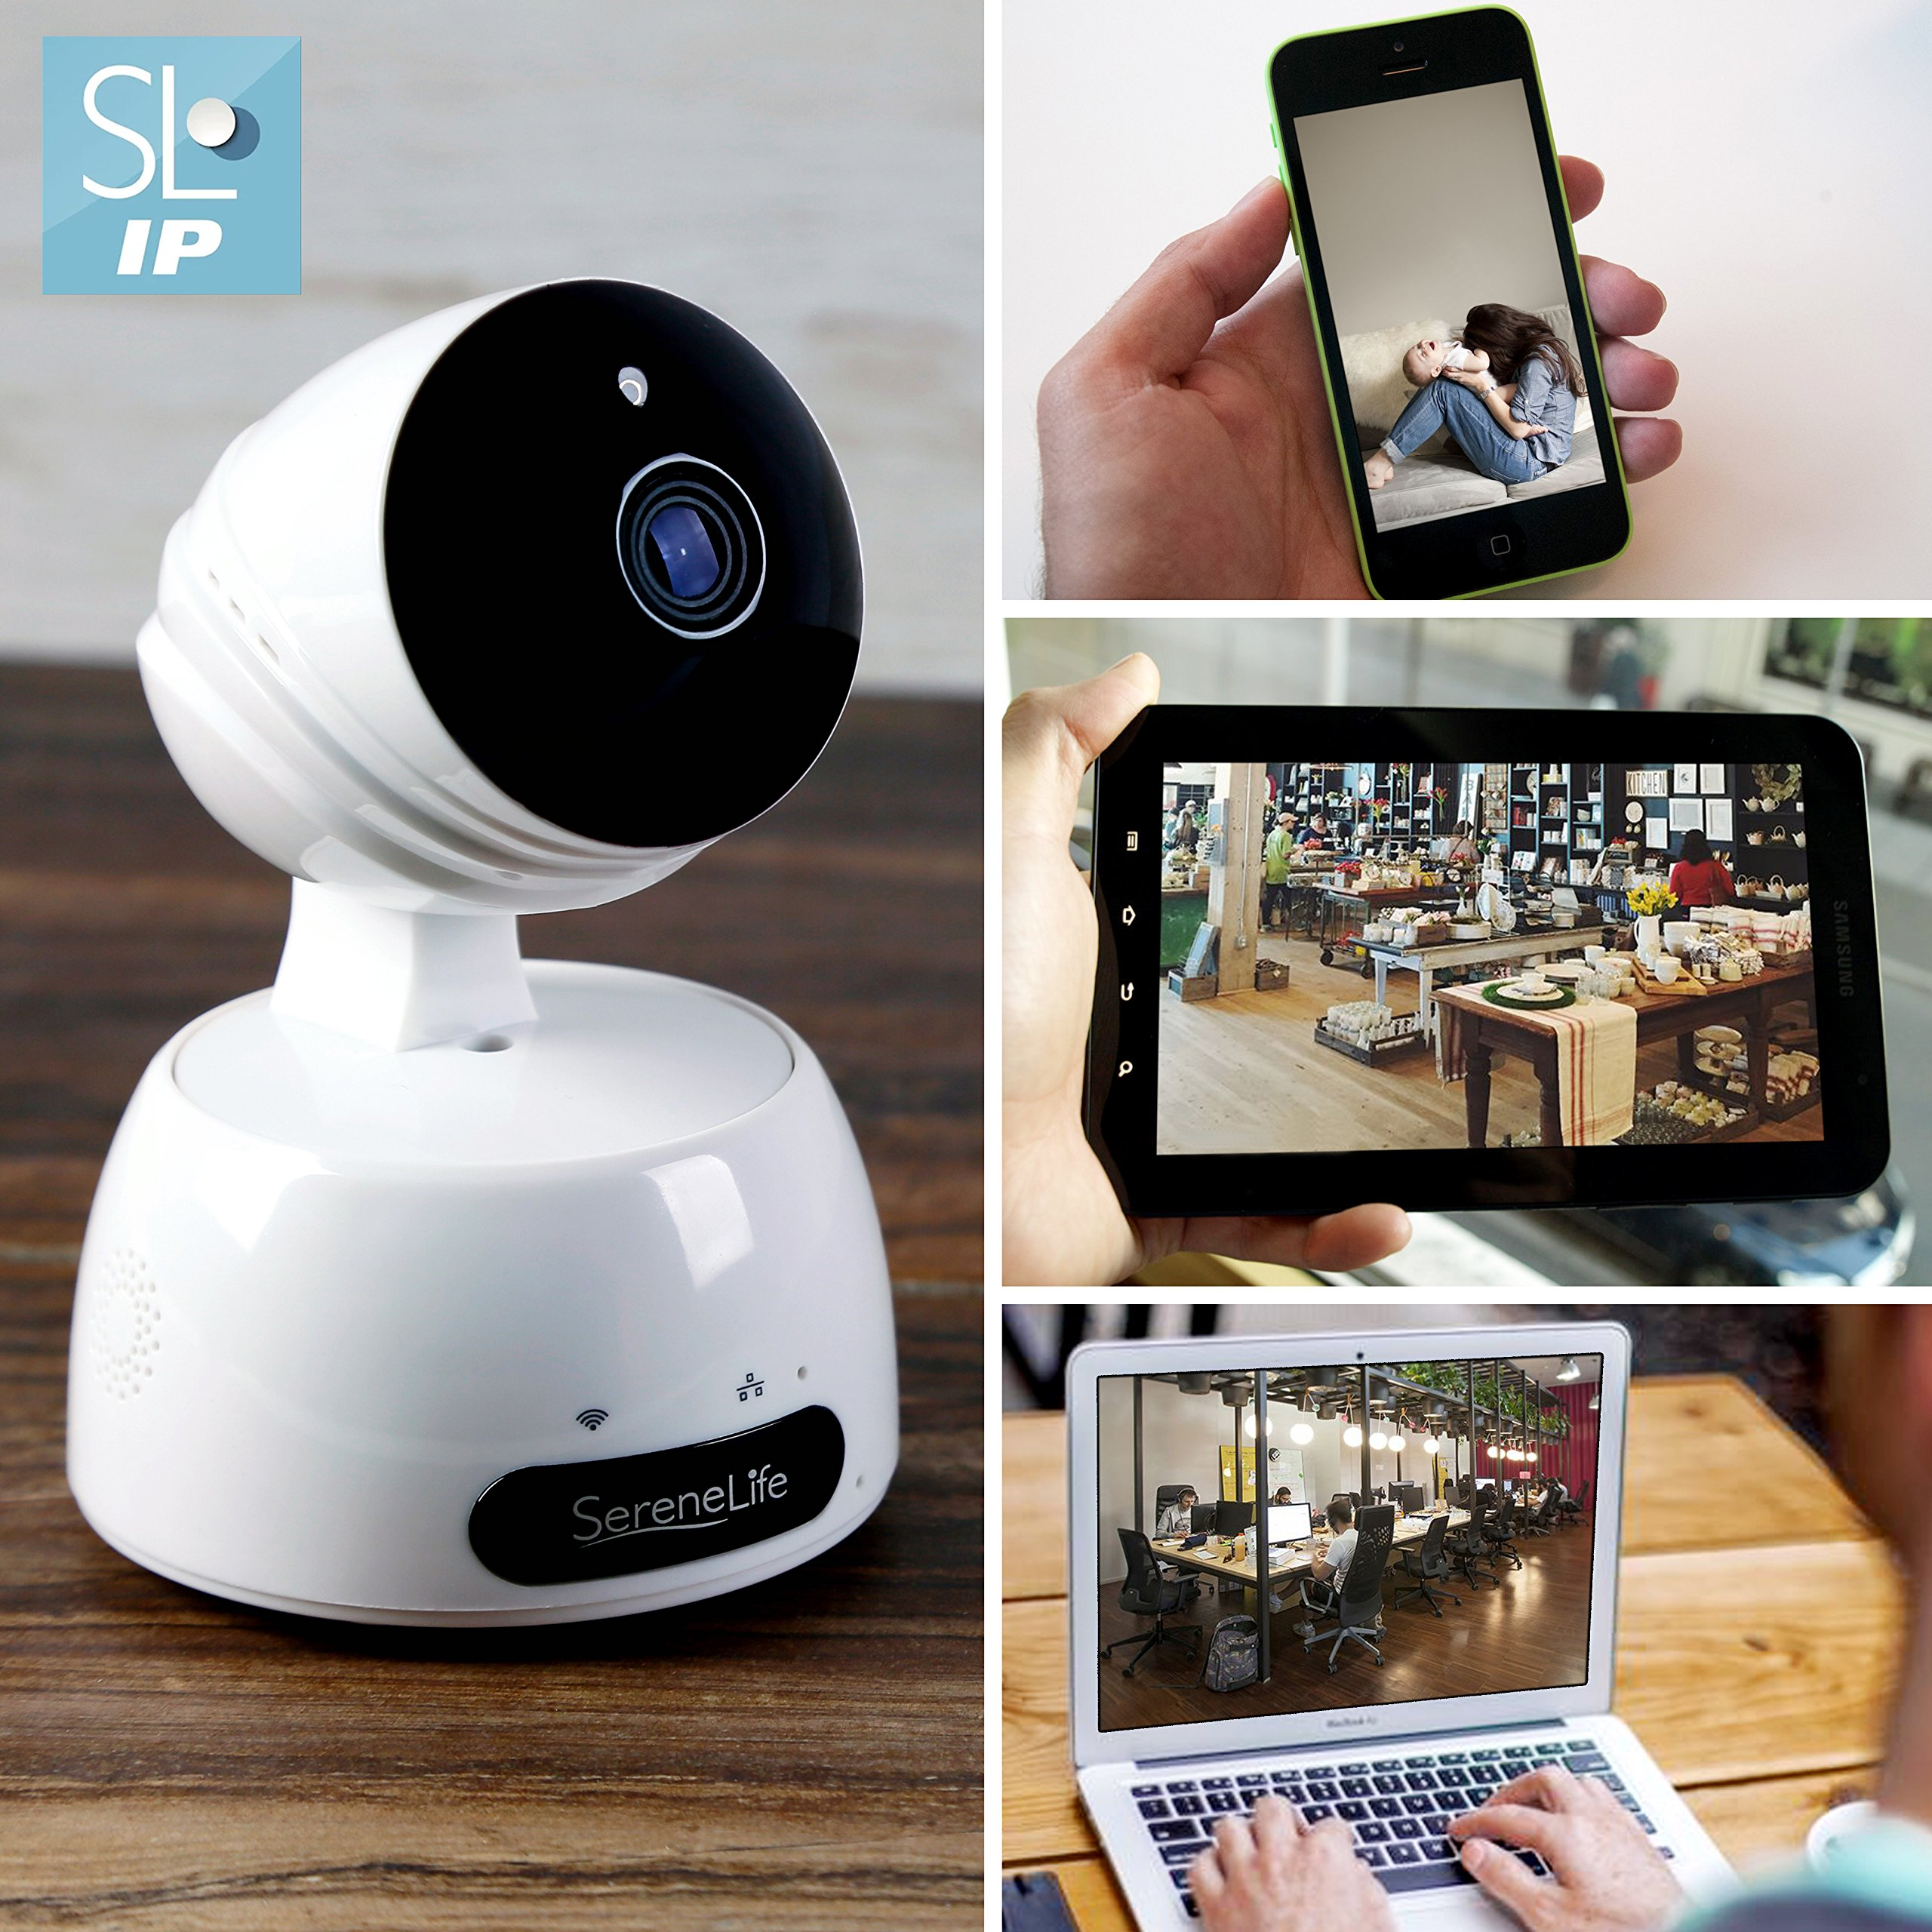 SereneLife Indoor Wireless IP Camera - HD 720p Network Security  Surveillance Home Monitoring w/Motion Detection, Night Vision, PTZ, 2 Way  Audio,